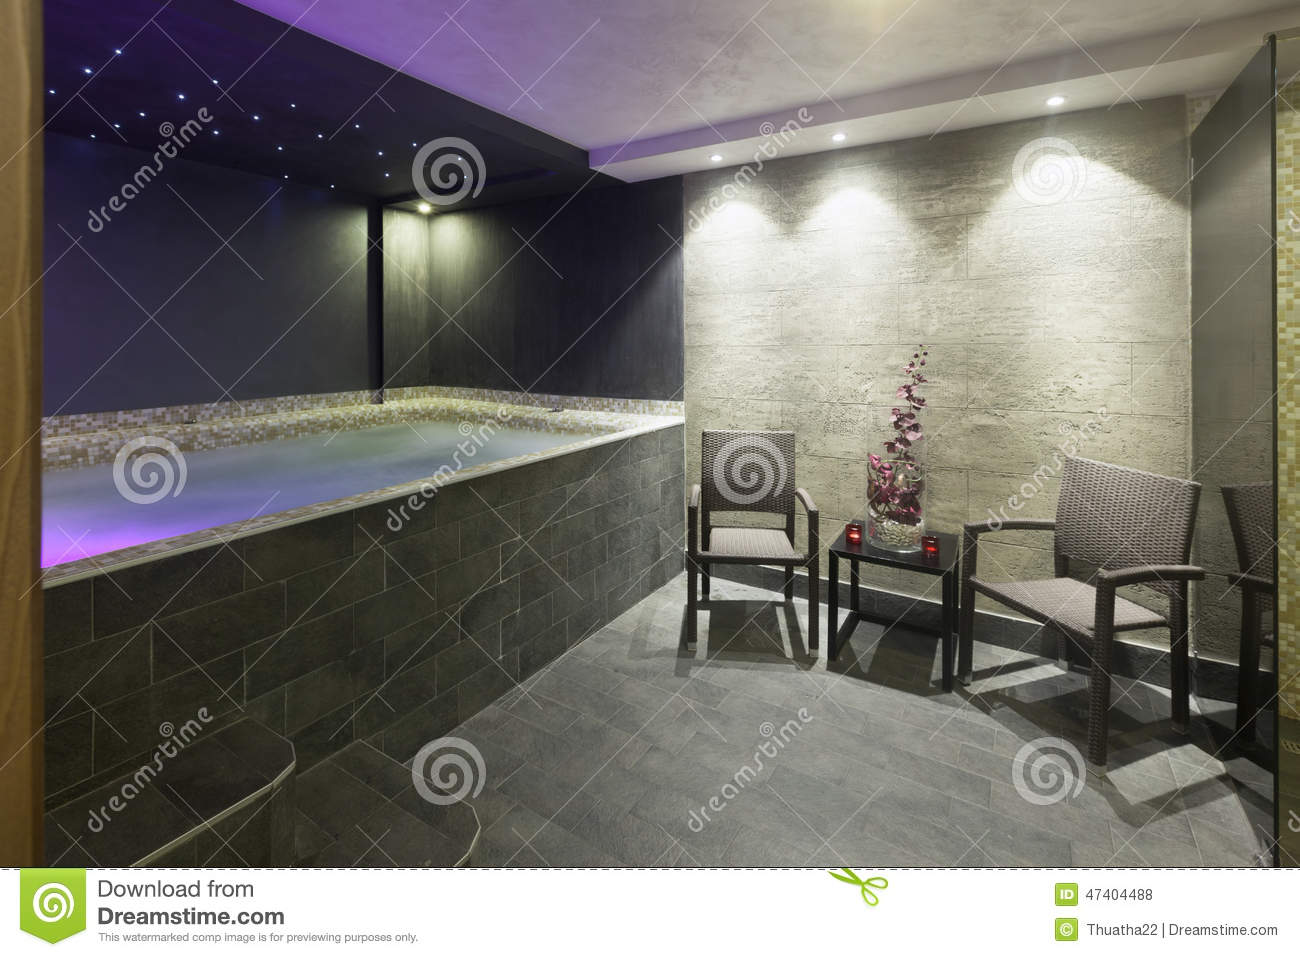 Interior Of A Hotel Spa With Jacuzzi Bath With Ambient Lights Stock ...